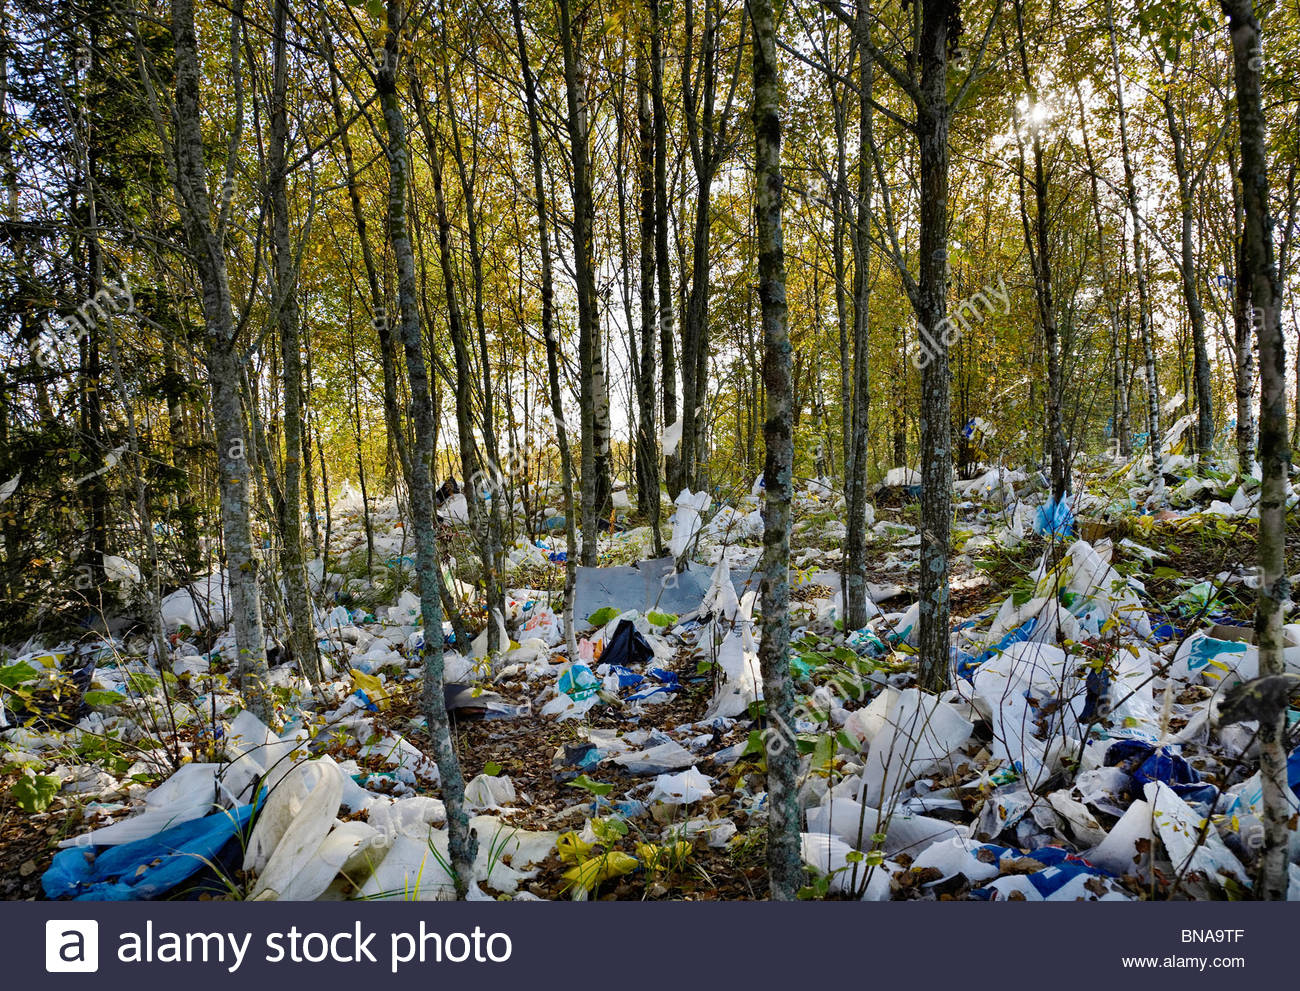 plastic bags, blown, in the forest, waste, environment, - Stock Image